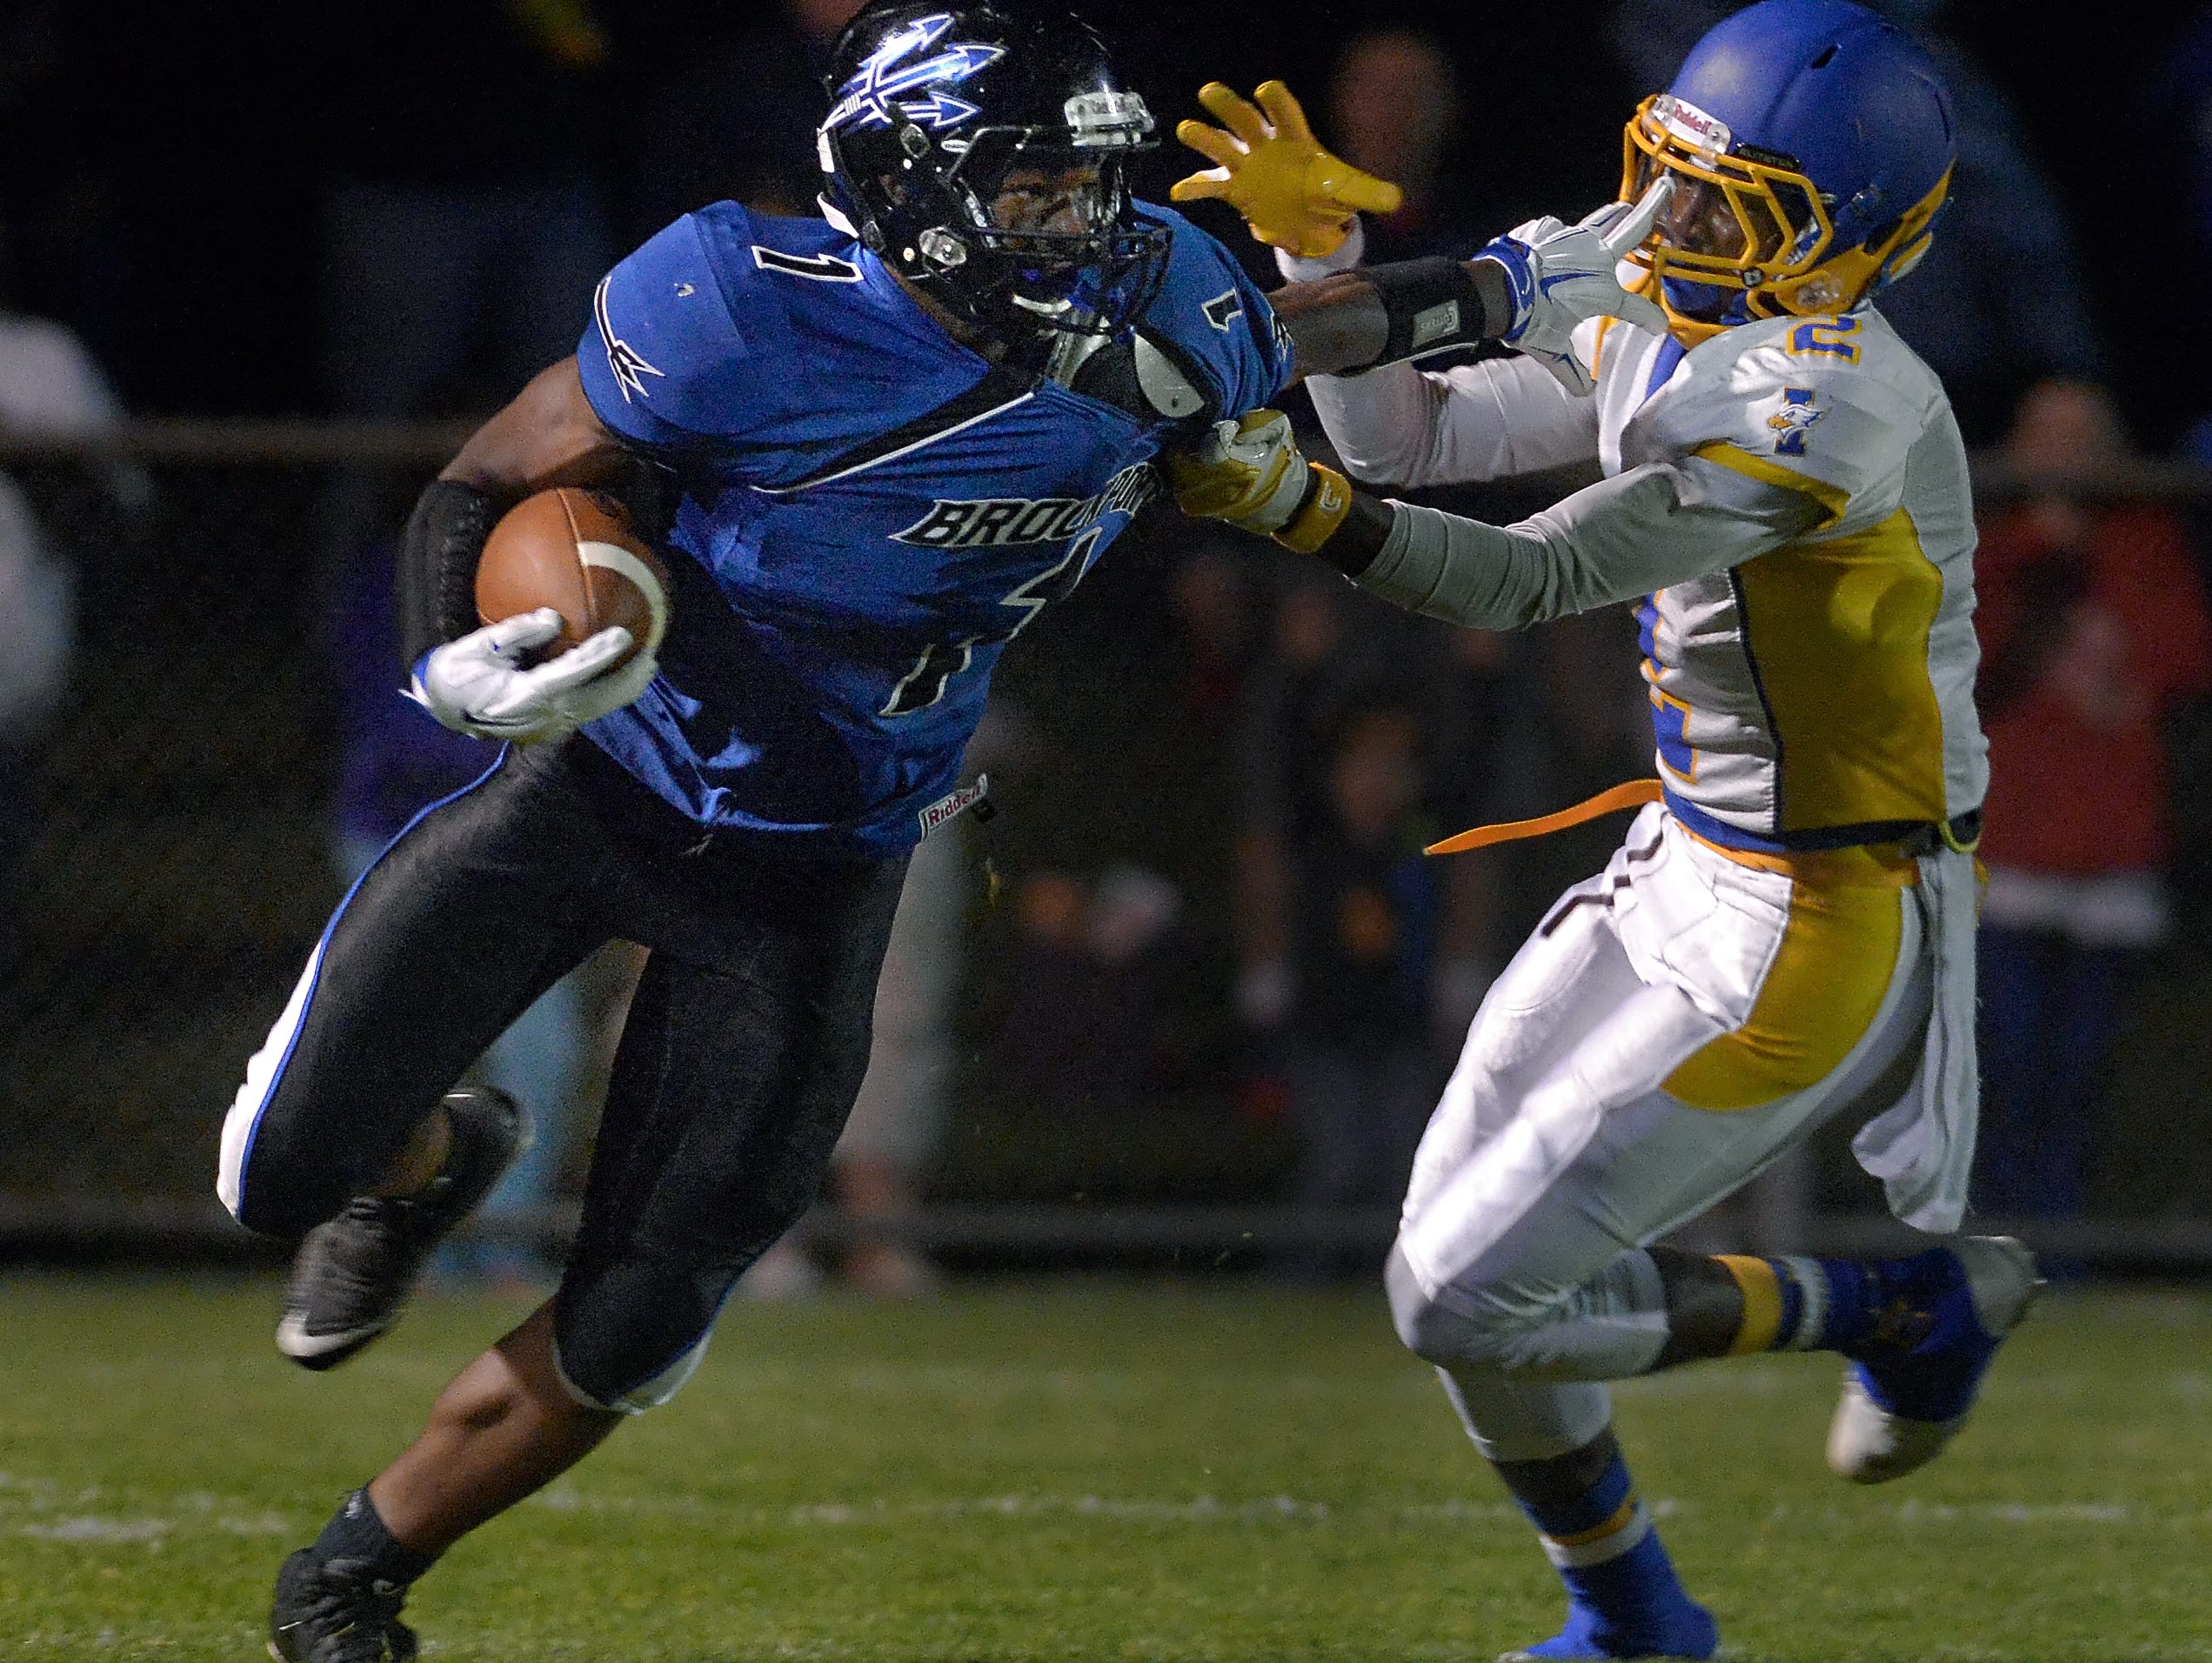 Brockport's Cory Gross, left, turns the corner on Irondequoit's Ty'Sean Sizer during regular season game played at Brockport High School on Friday, September 25, 2015.